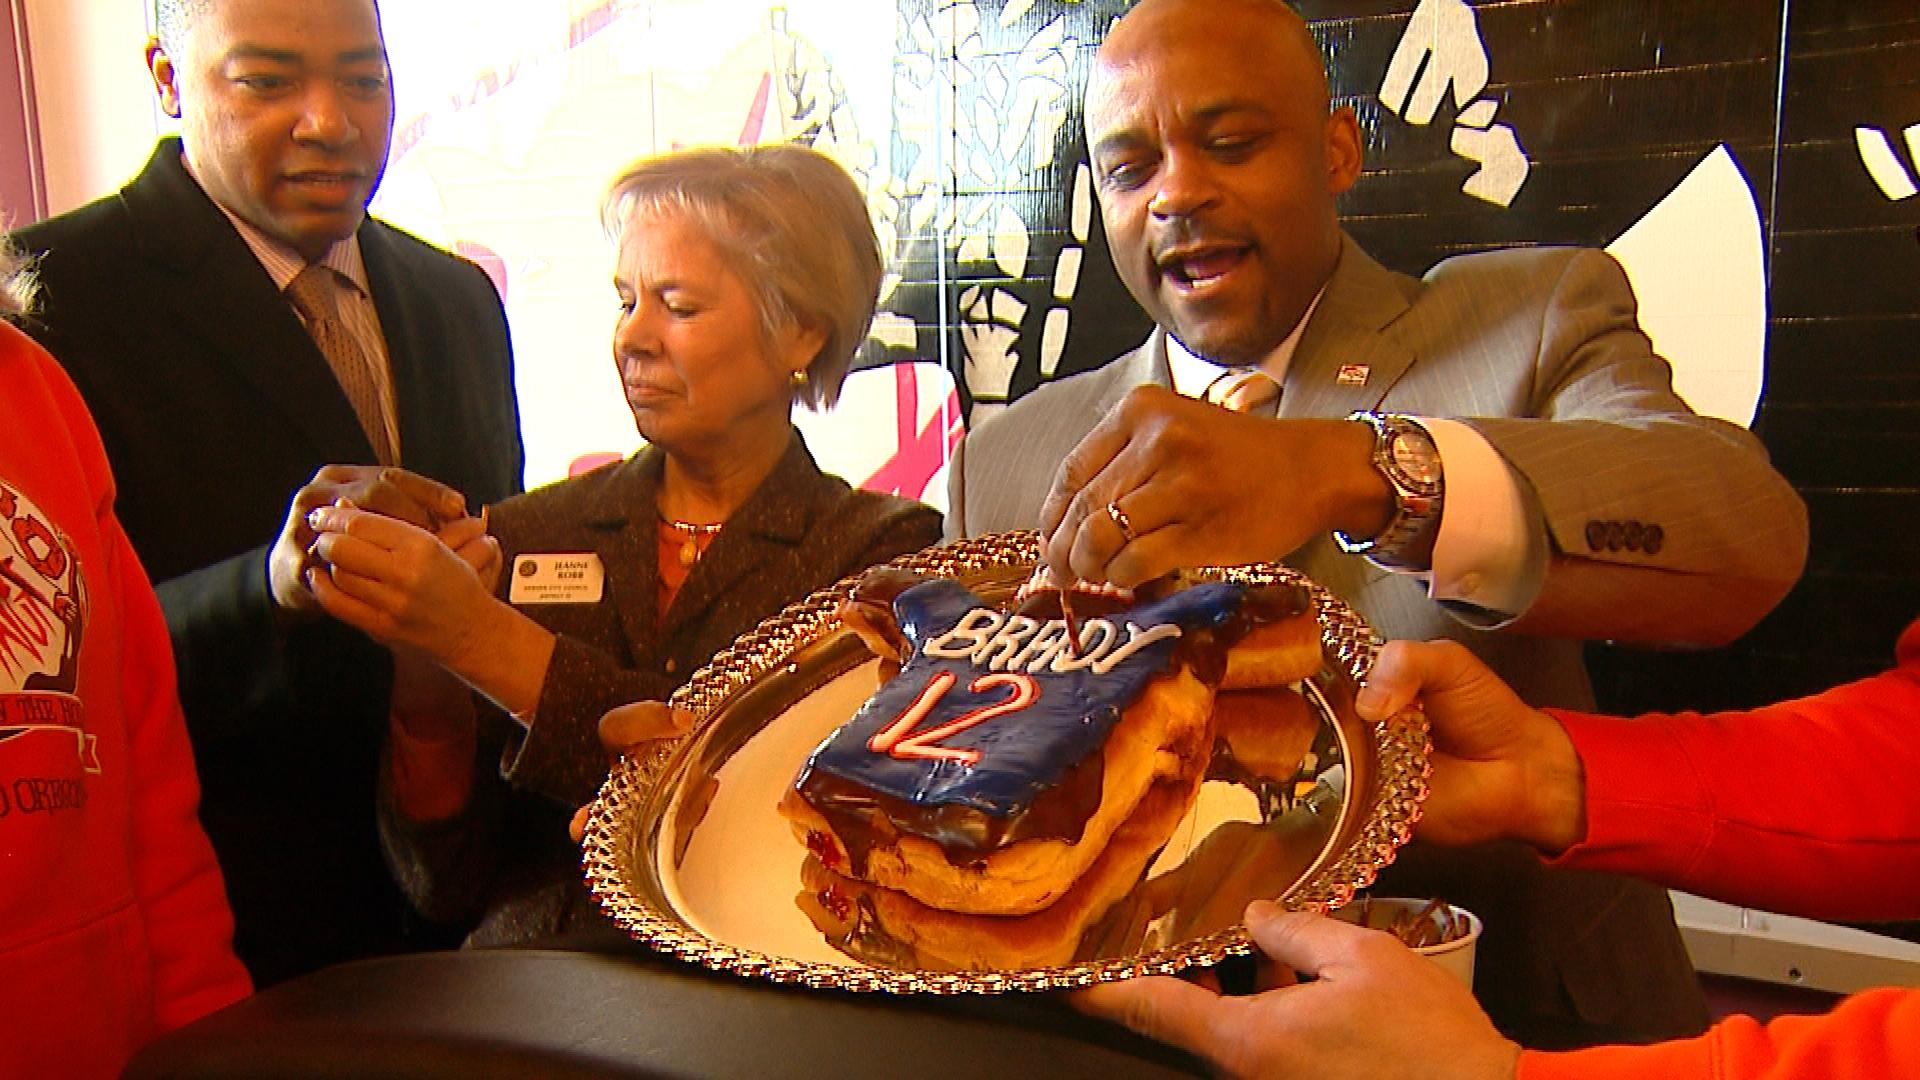 Denver Mayor Michael Hancock stabs the Tom Brady Voodoo Doughnut with a pretzel on Wednesday. (credit: CBS)